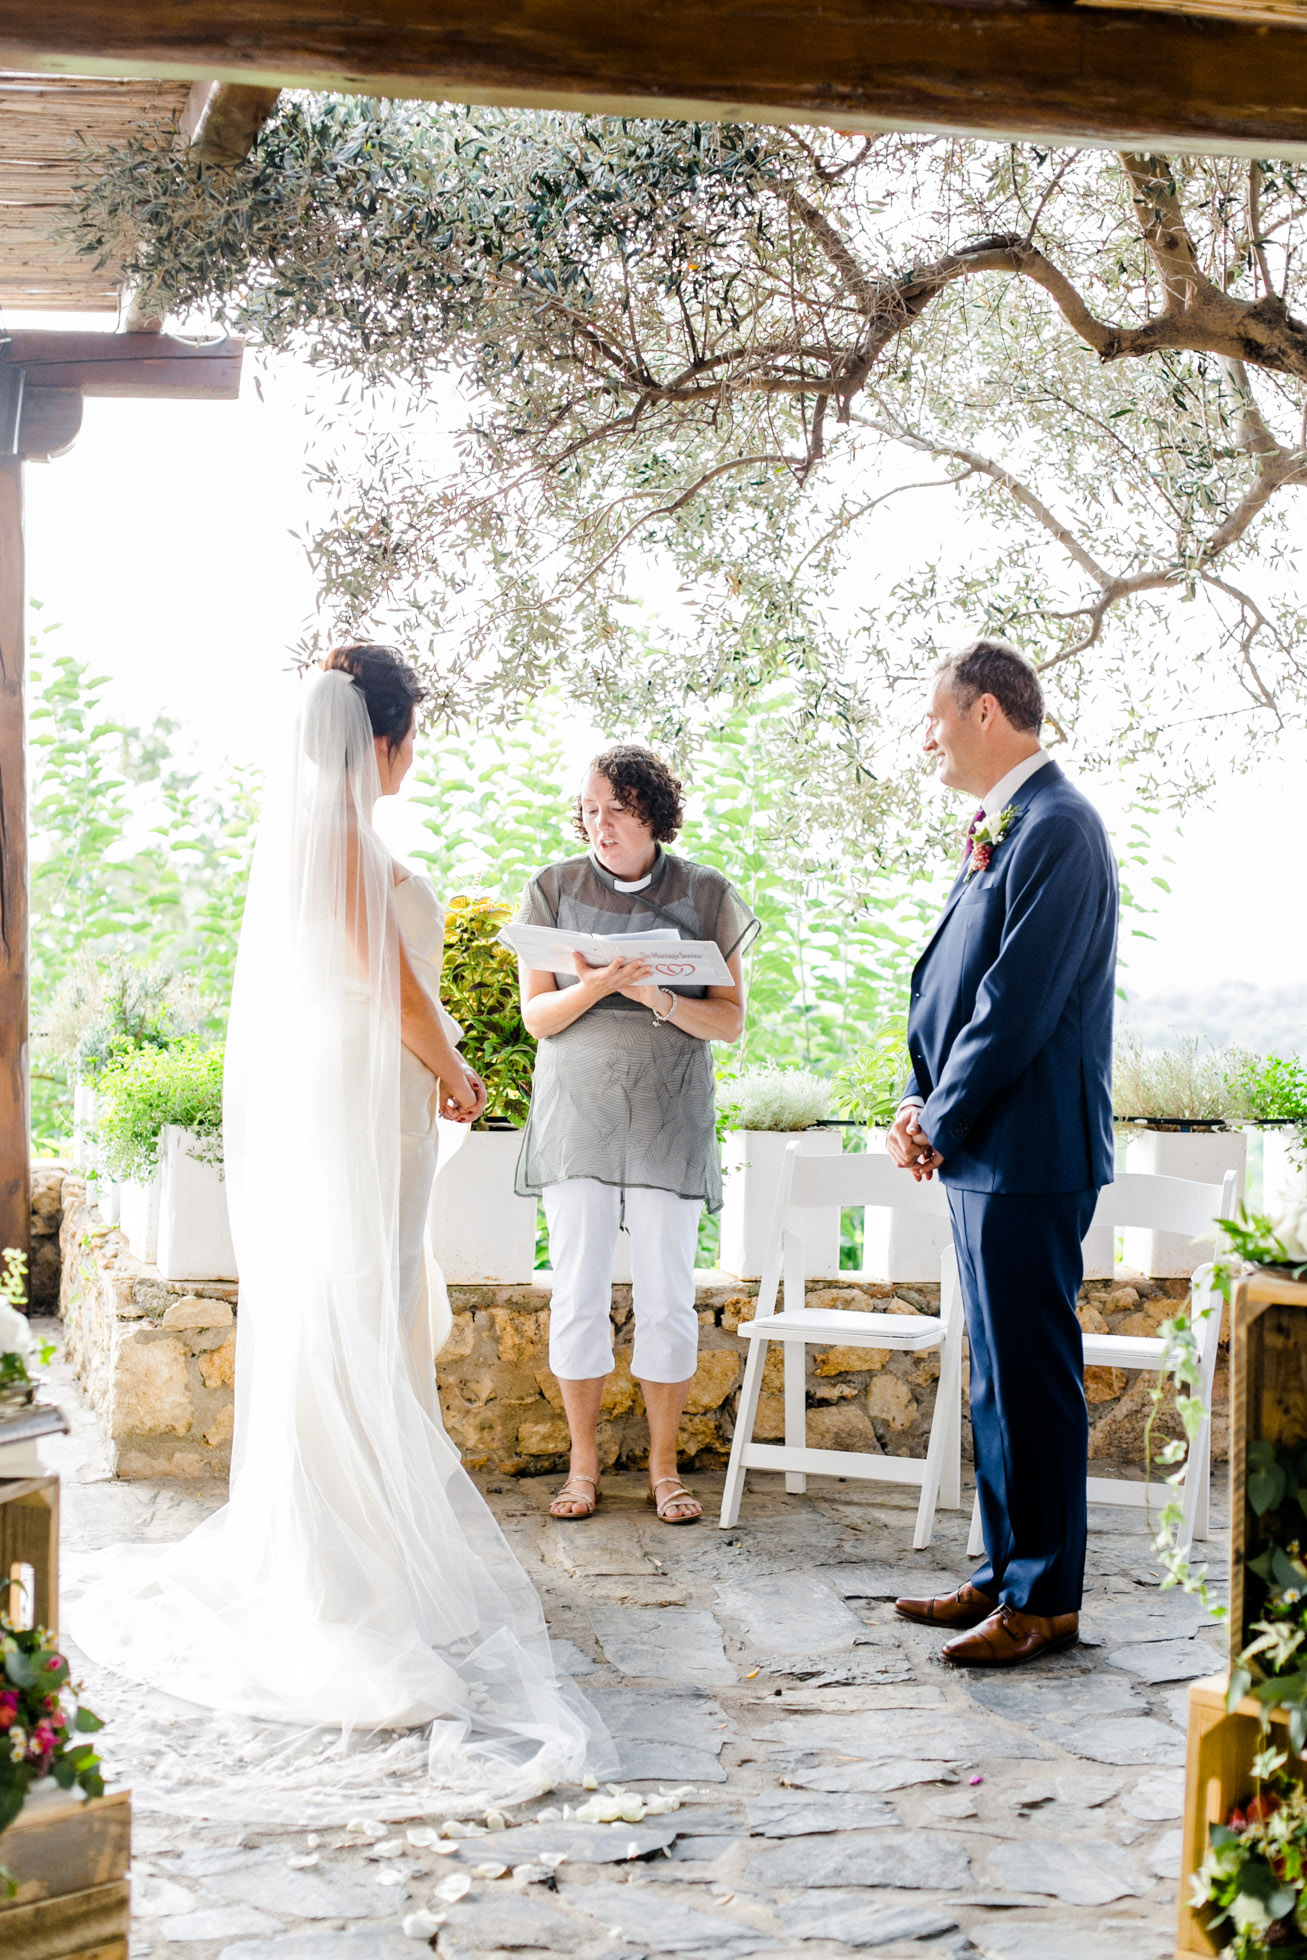 Destination wedding ceremony in Crete, Greece.